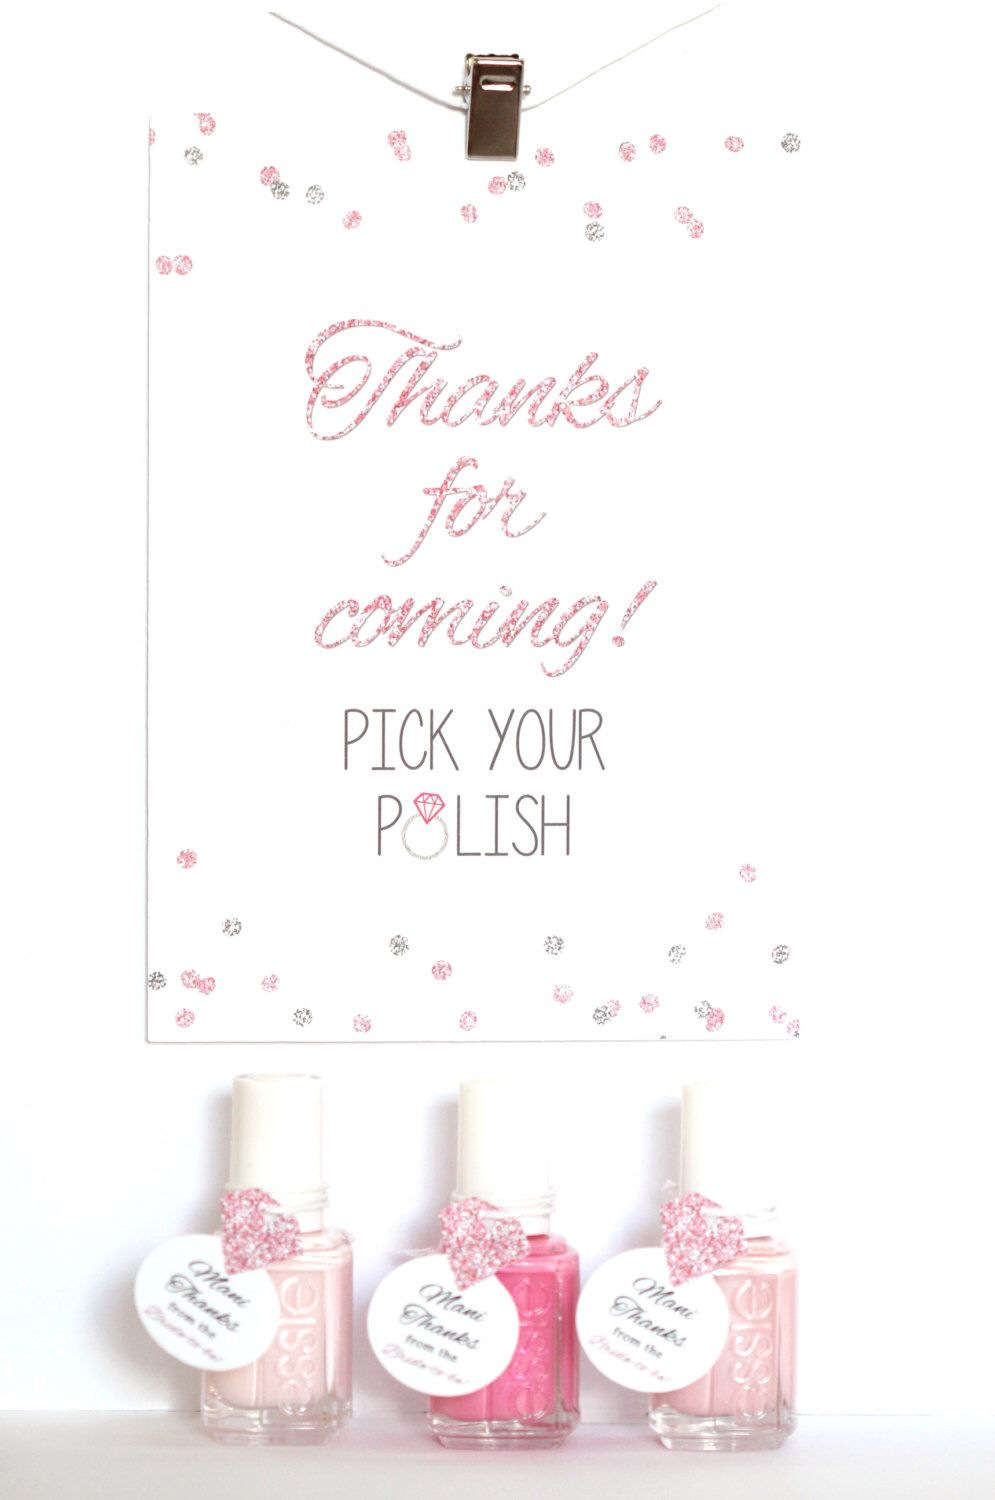 Nail Polish Favor Sign, Mani Thanks Shower Sign, Bridal Wedding Shower Sign, Bachelorette Party, Thanks For Coming Pick Your Polish Sign by PinkFoxPapercrafts on Etsy https://www.etsy.com/listing/468851811/nail-polish-favor-sign-mani-thanks